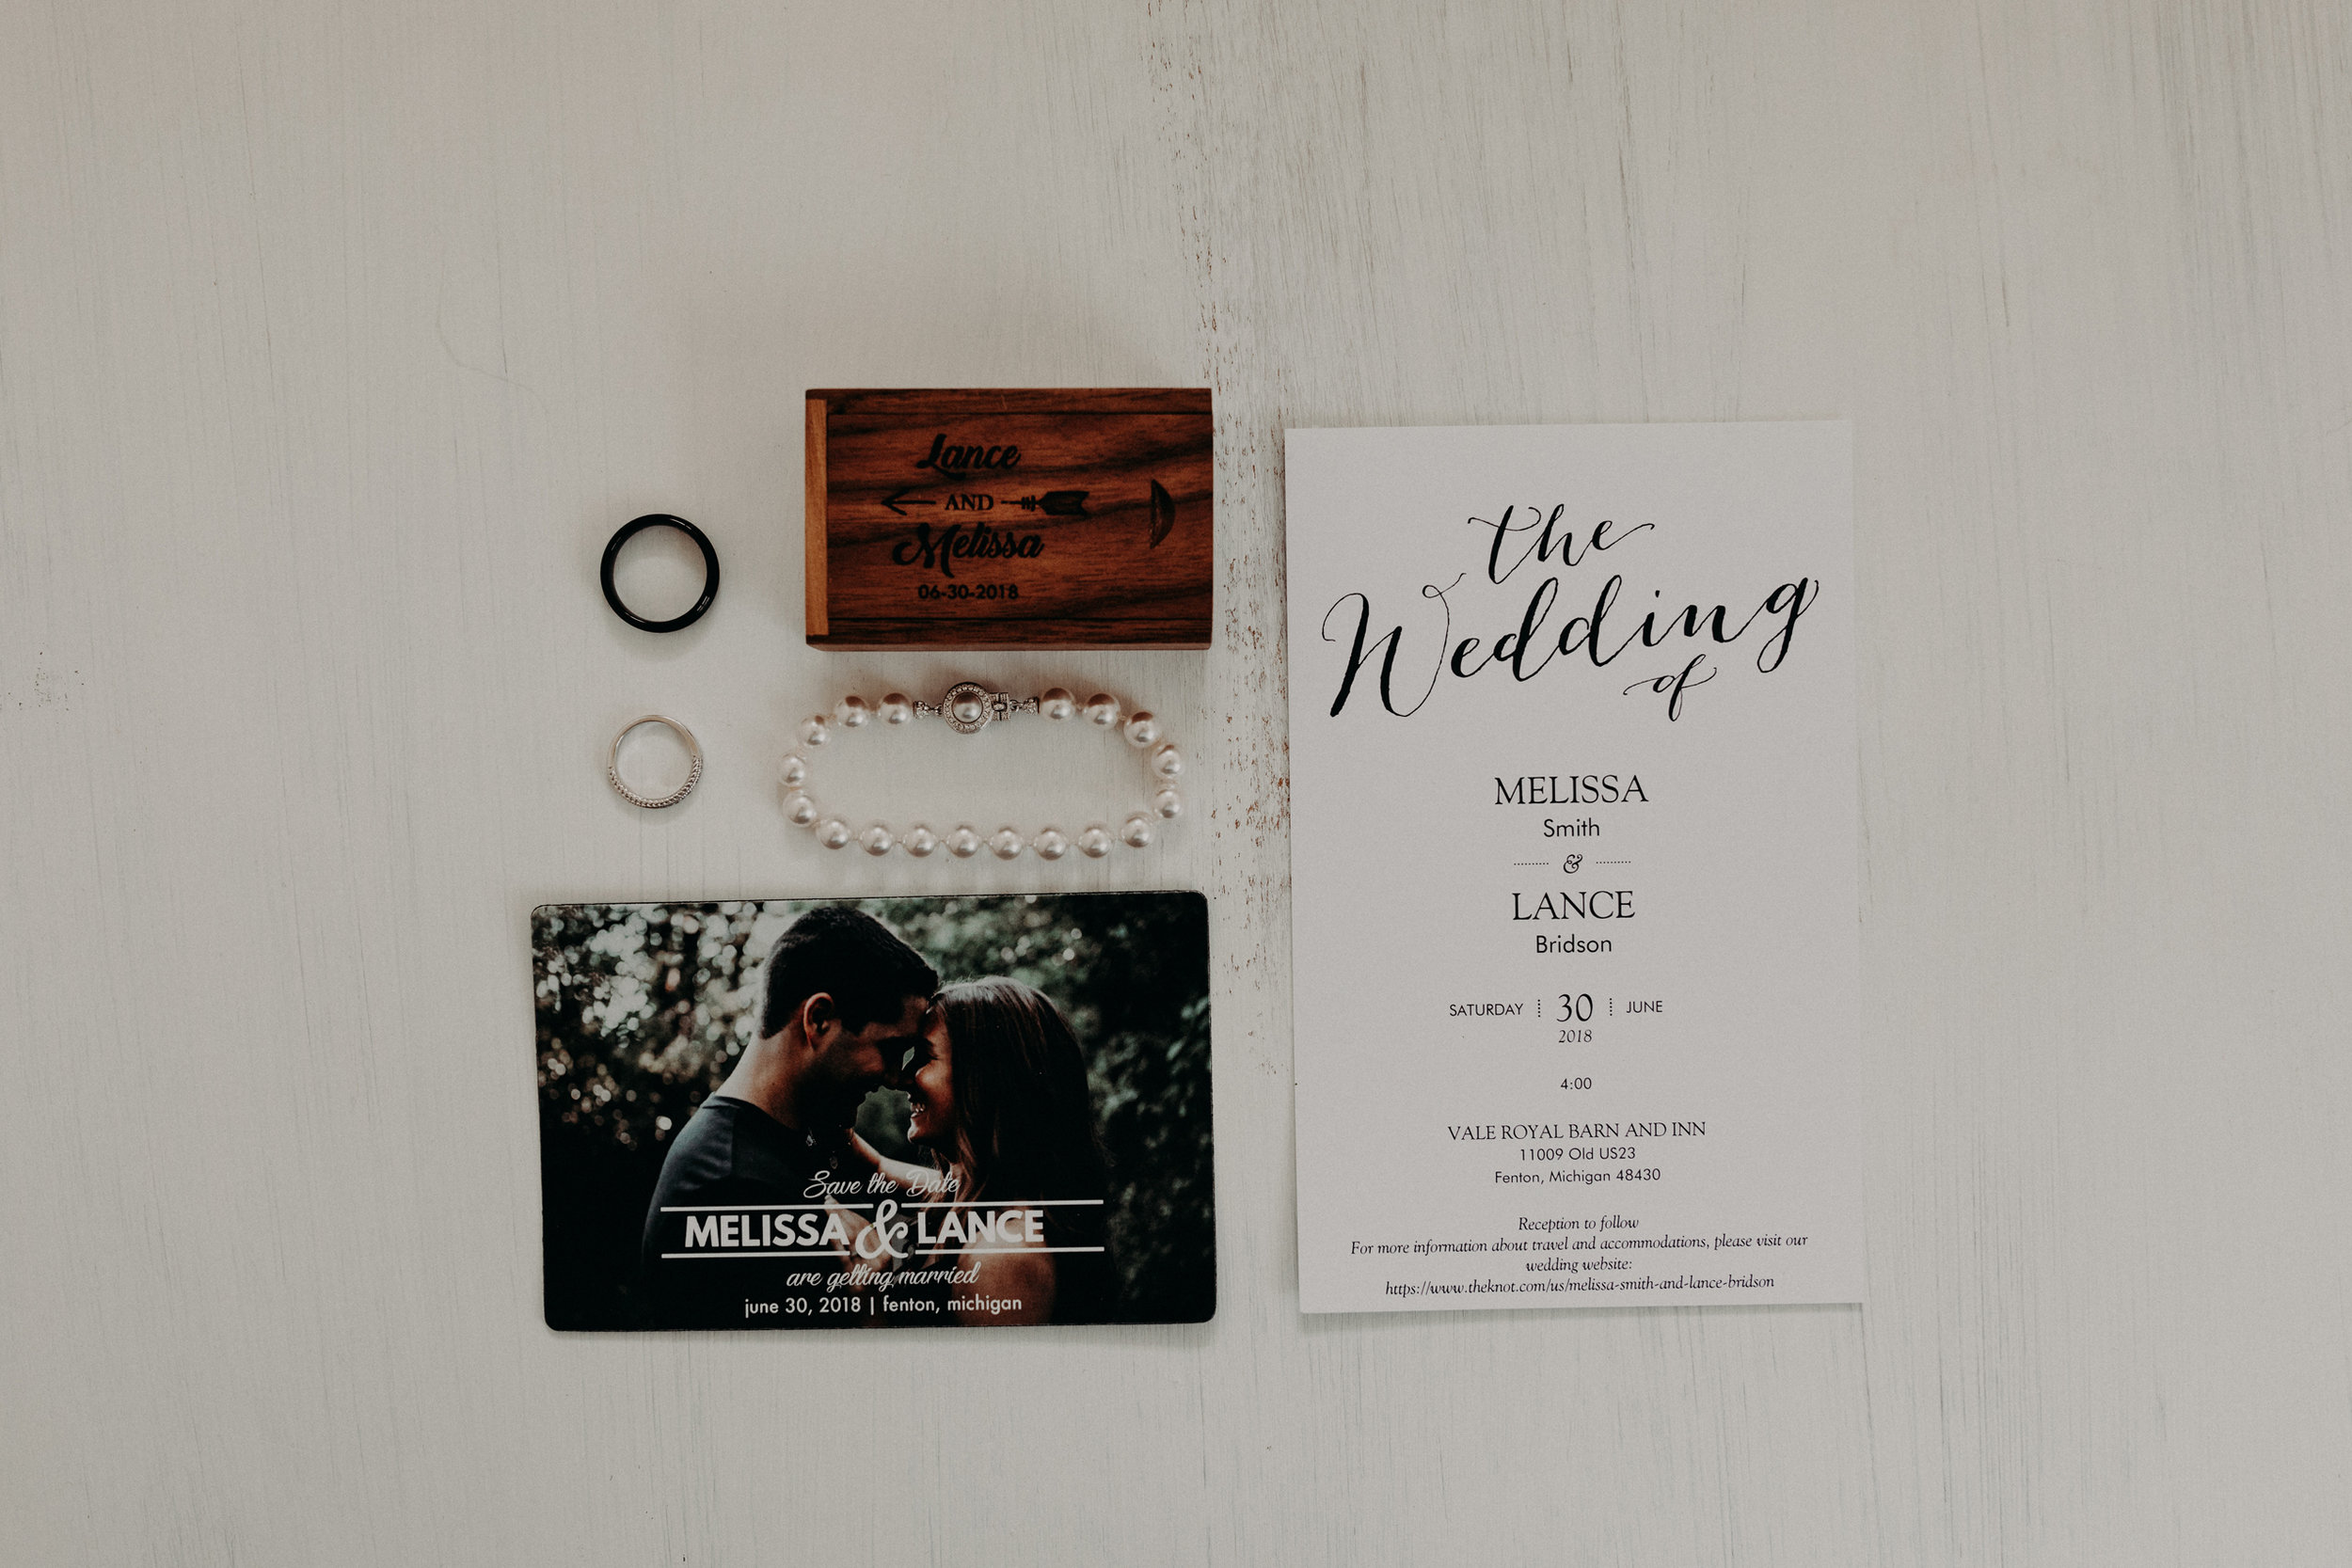 (0010) Melissa + Lance (Wedding).jpg